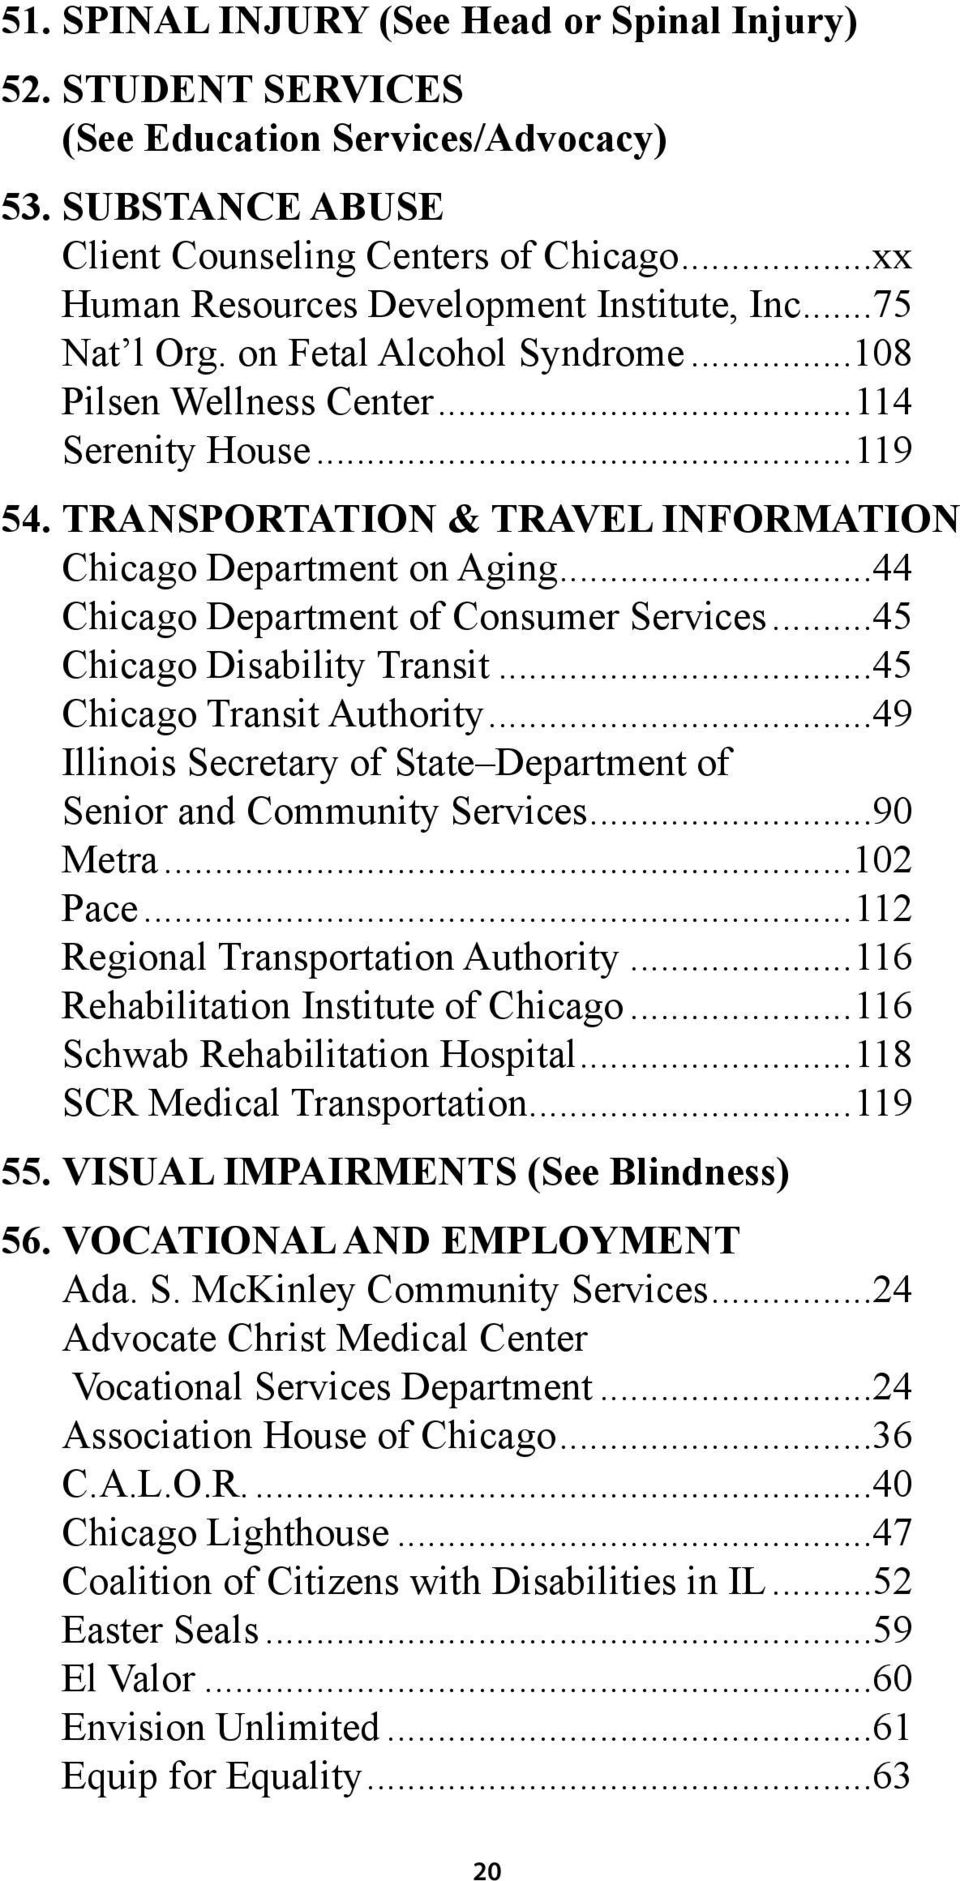 TRANSPORTATION & TRAVEL INFORMATION Chicago Department on Aging...44 Chicago Department of Consumer Services...45 Chicago Disability Transit...45 Chicago Transit Authority.